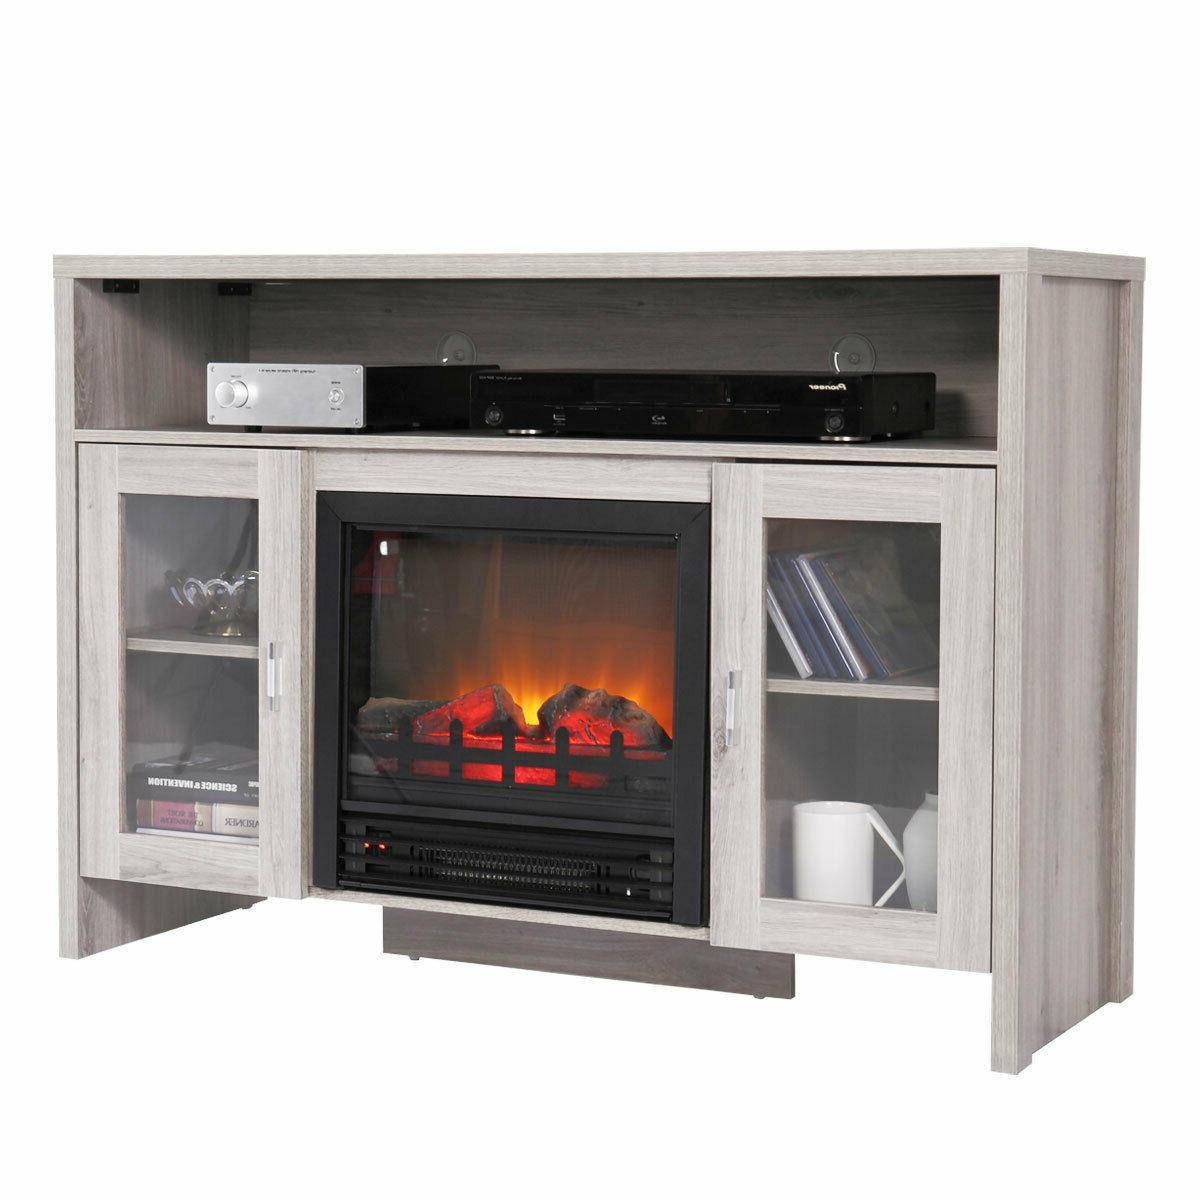 Fireplace TV Storage Media Heater for TVS up to